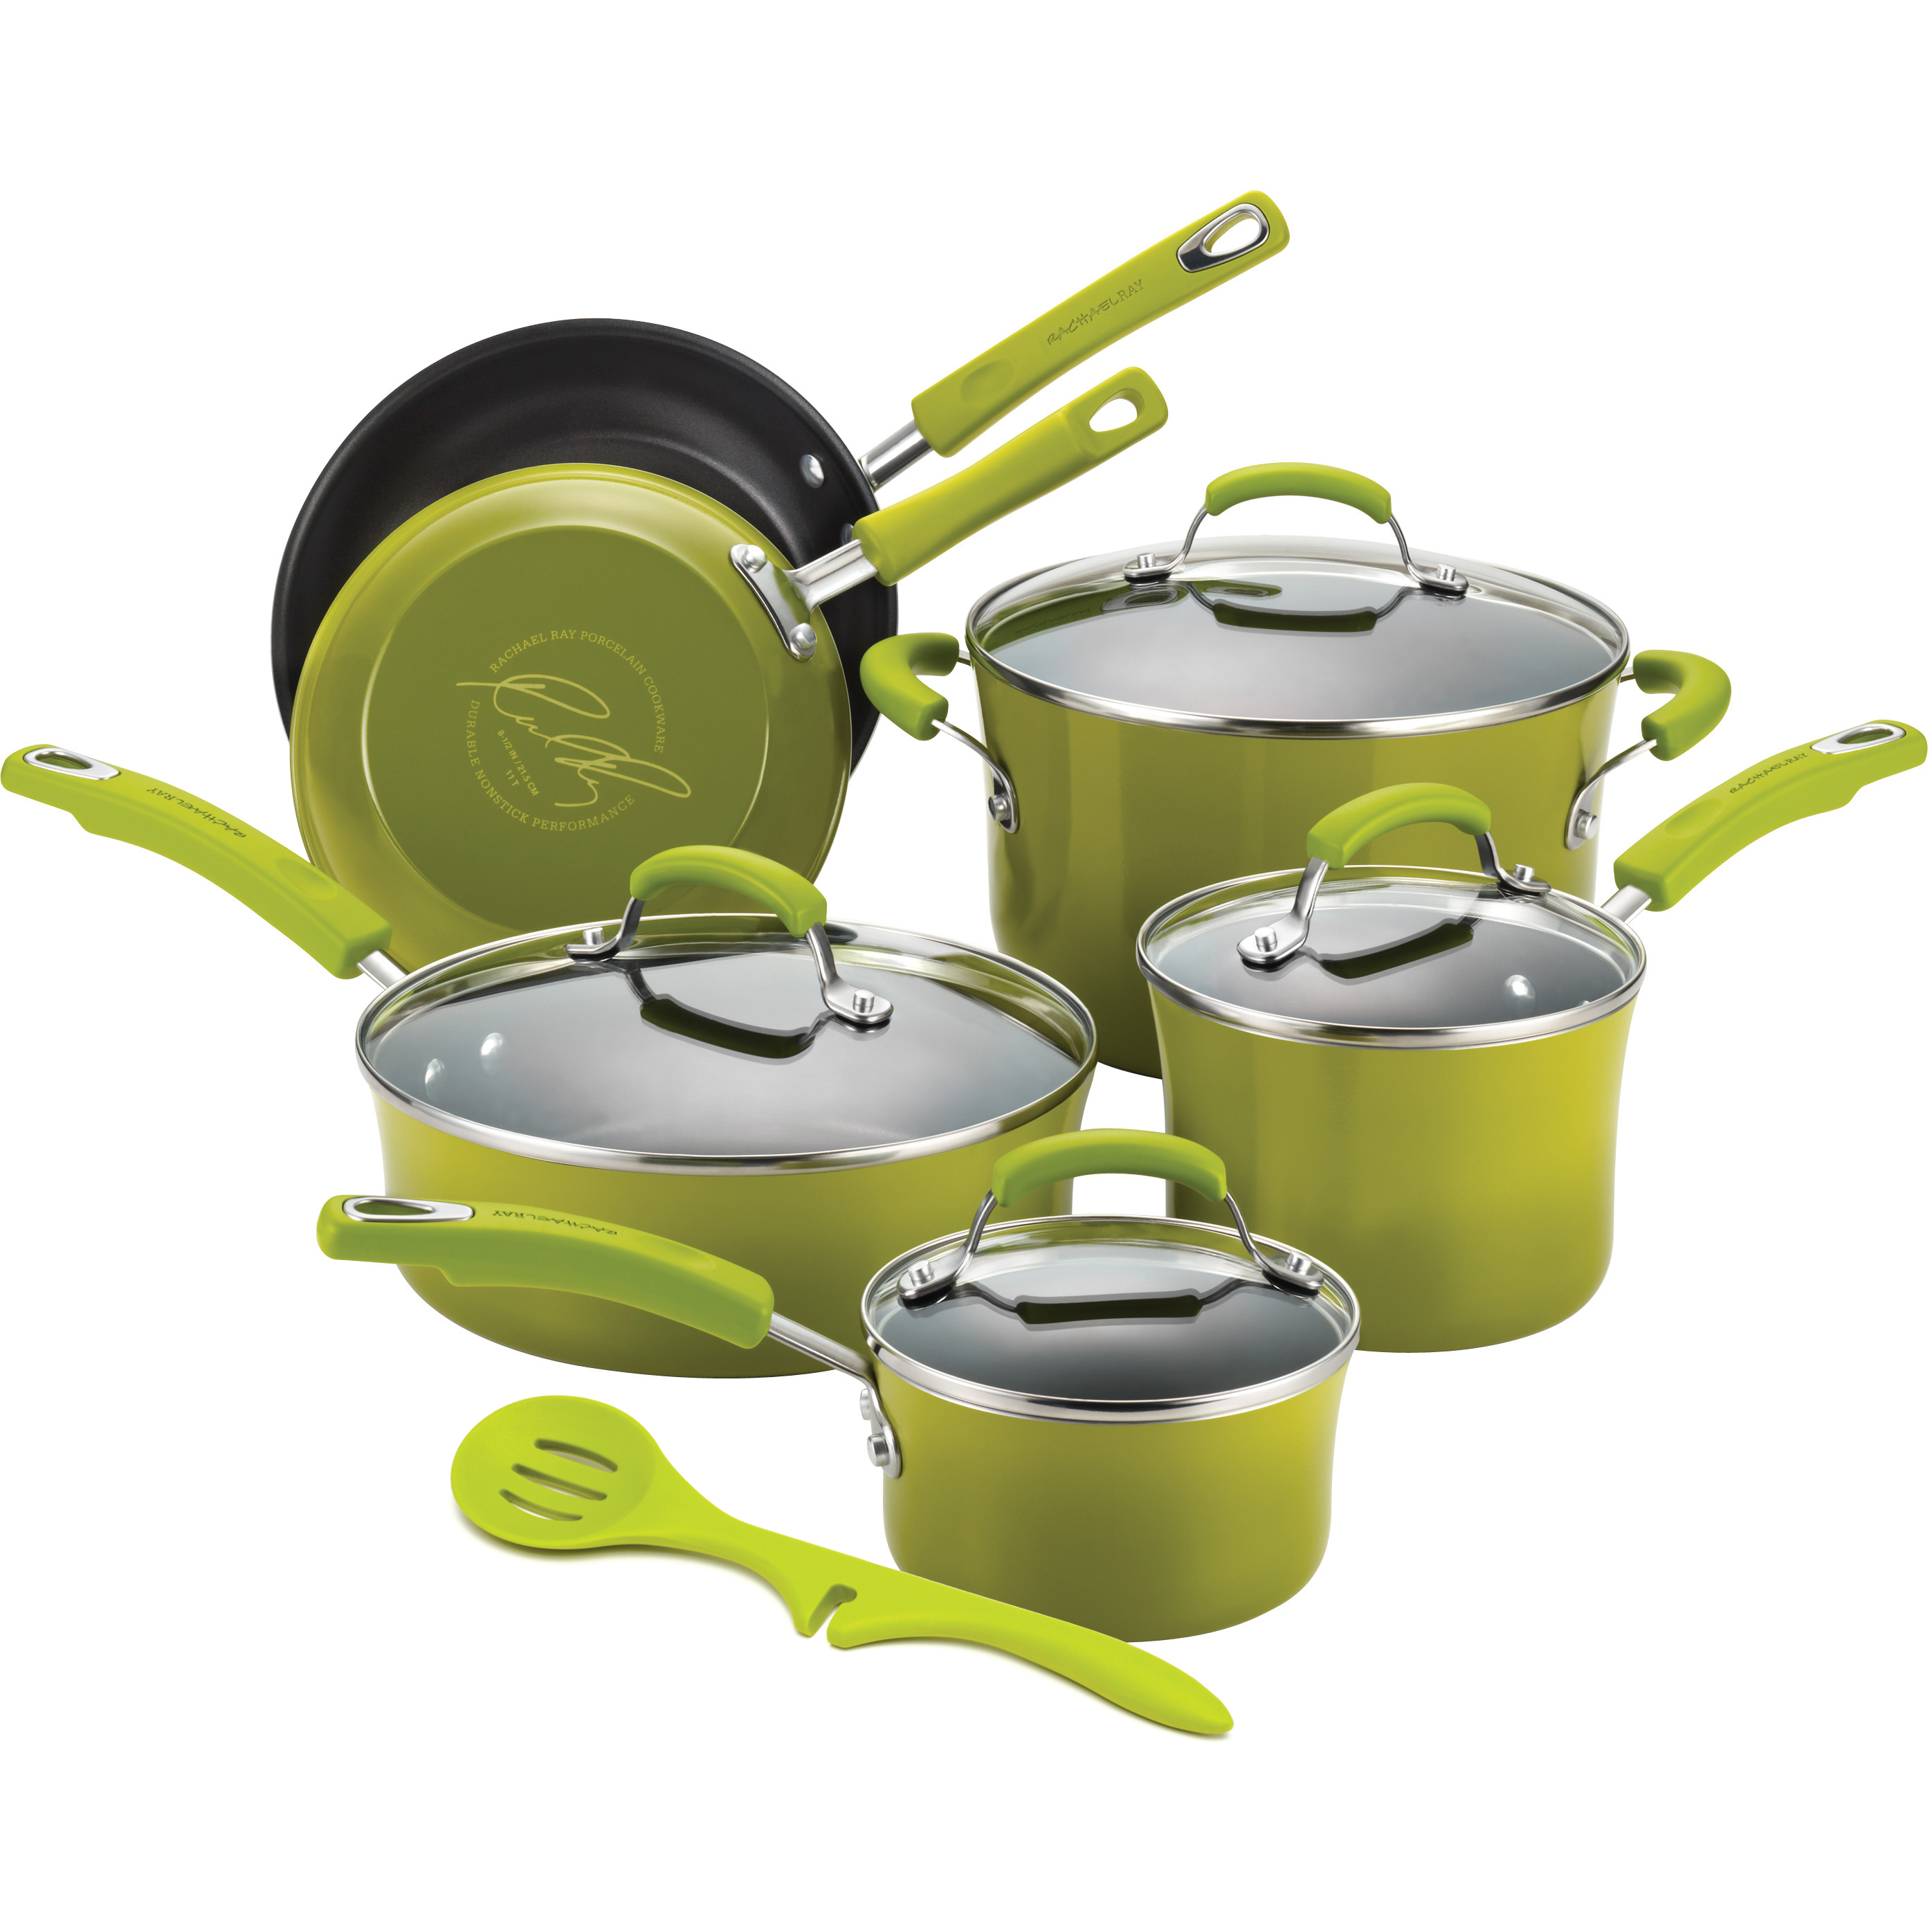 Rachael Ray Green Porcelain Enamel II 10 Piece Cookware Set with Free Lazy Spoon